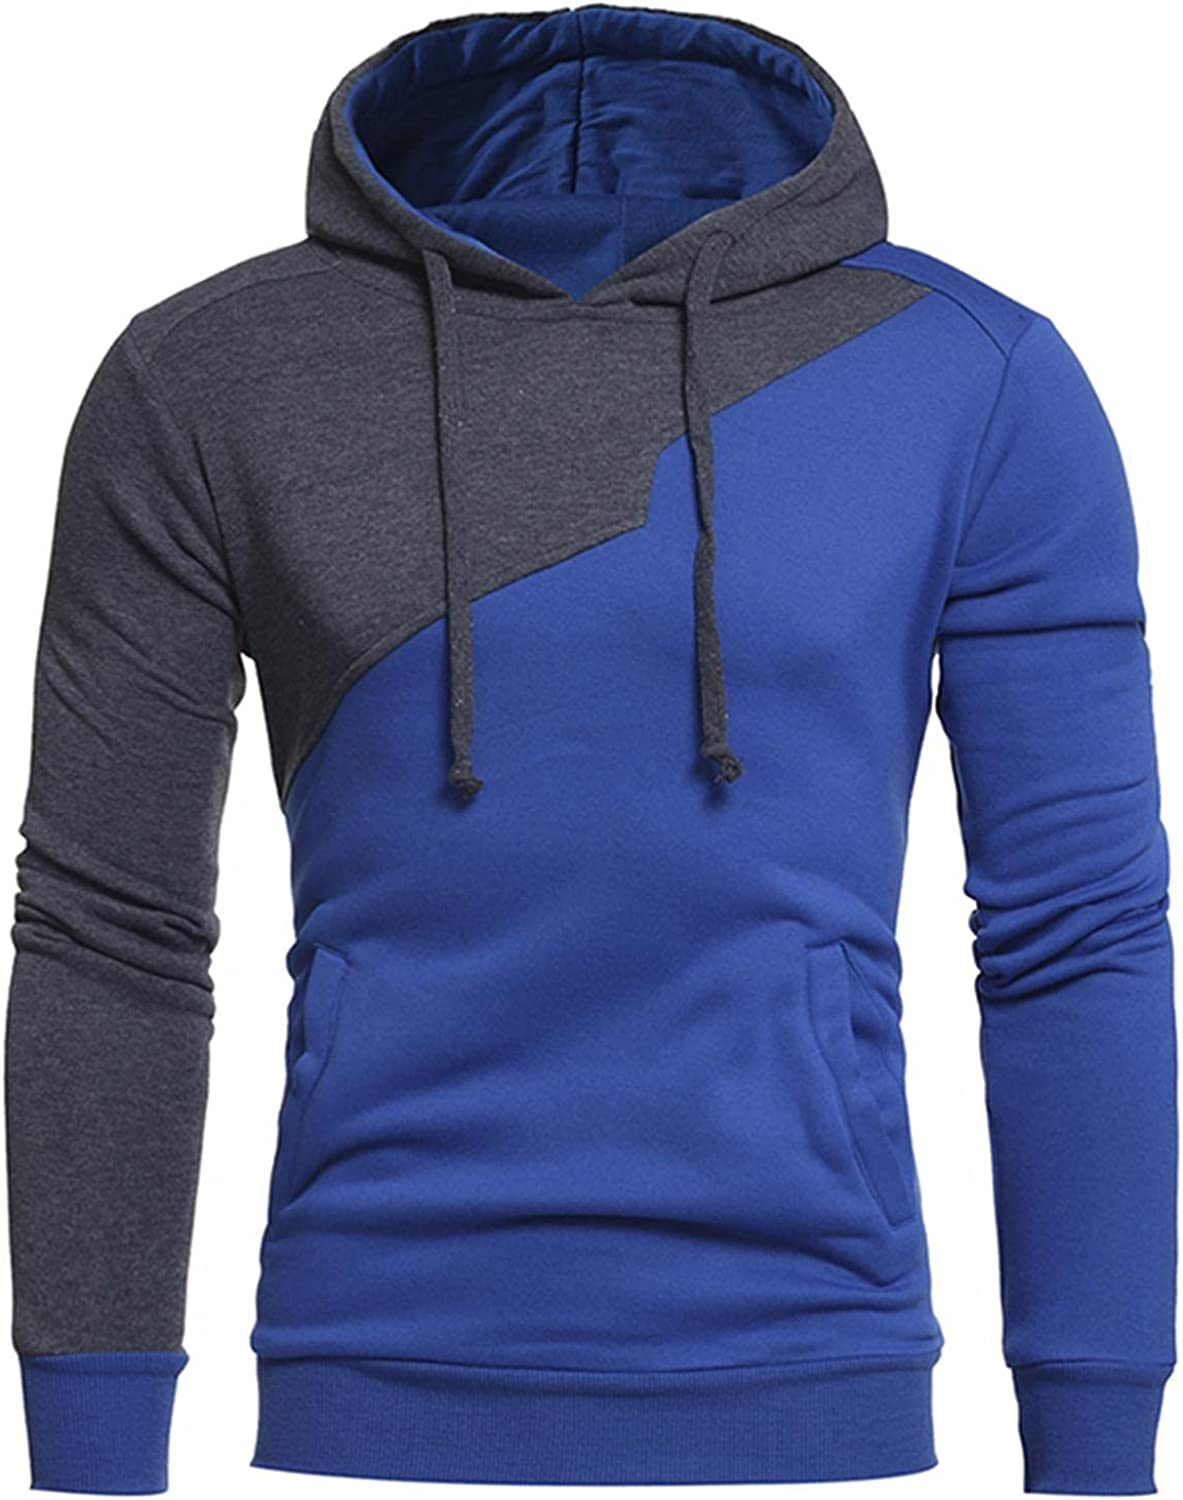 Qsctys Mens Sweatshirt Casual Patchwork Color Sports Crewneck Hooded Pullover Outwear Lightweight Cotton Fashion Hoodies